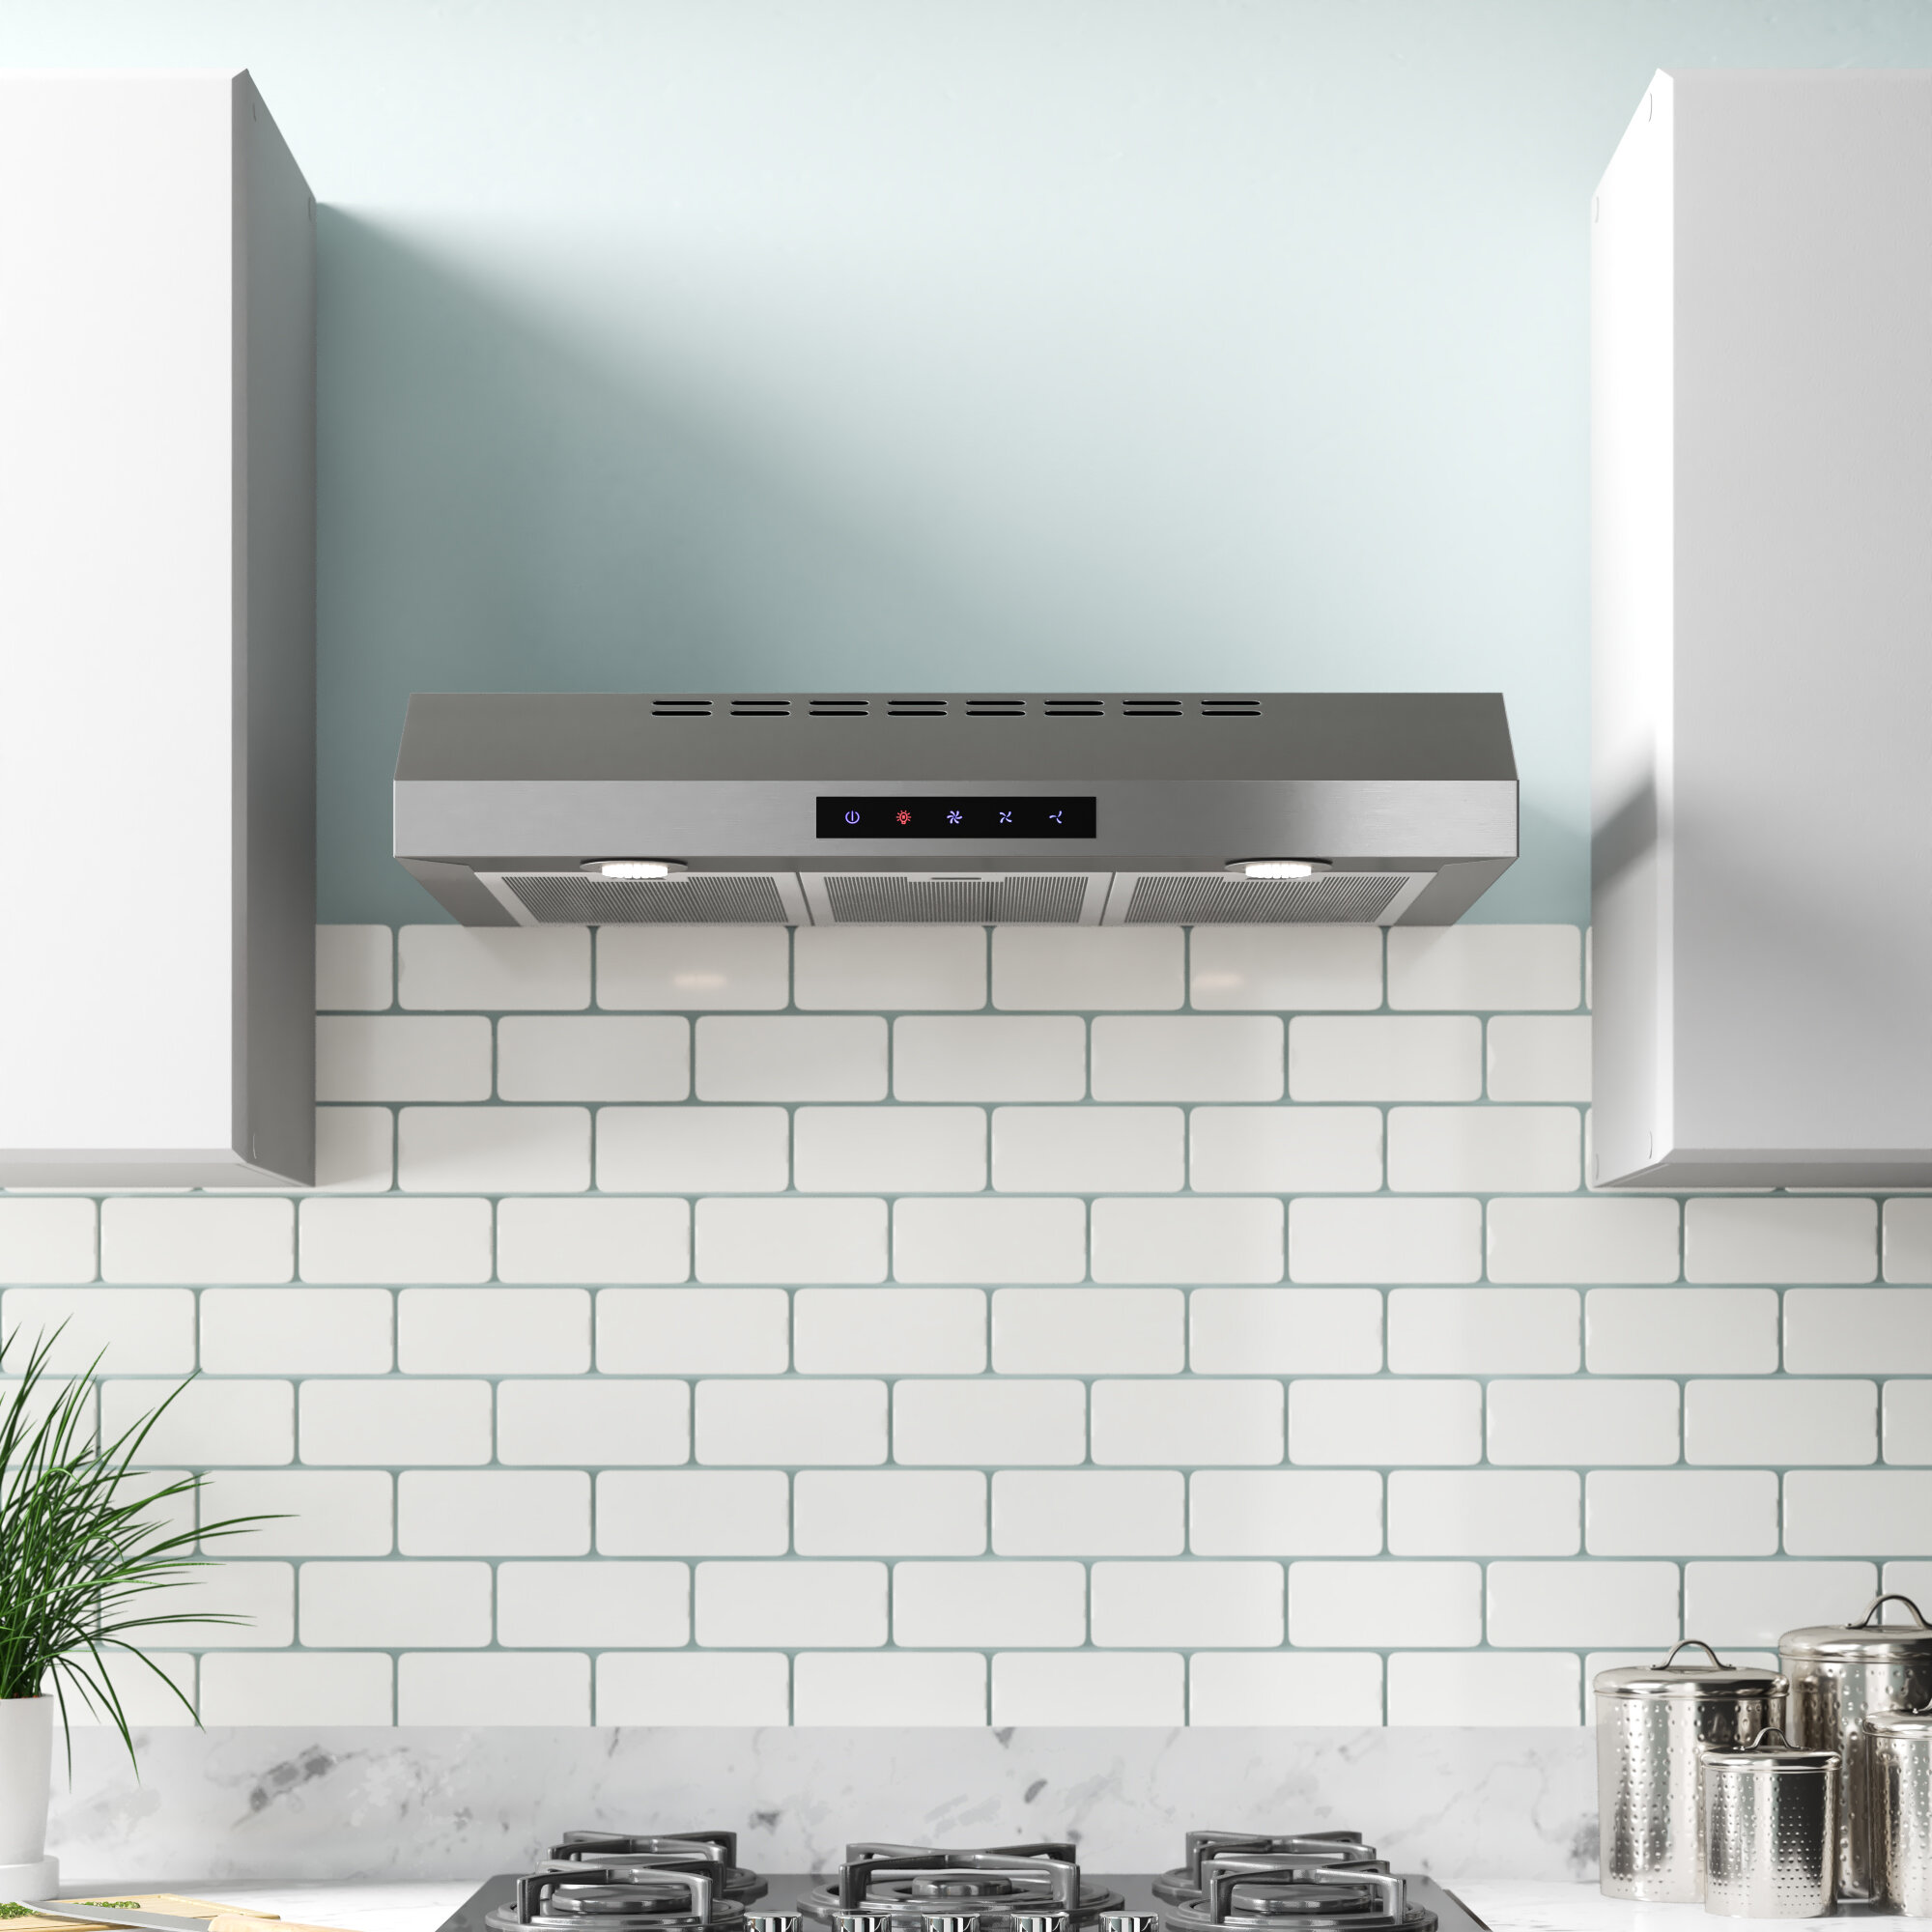 Kbc 30 400 Cfm Convertible Under Cabinet Range Hood Reviews Wayfair